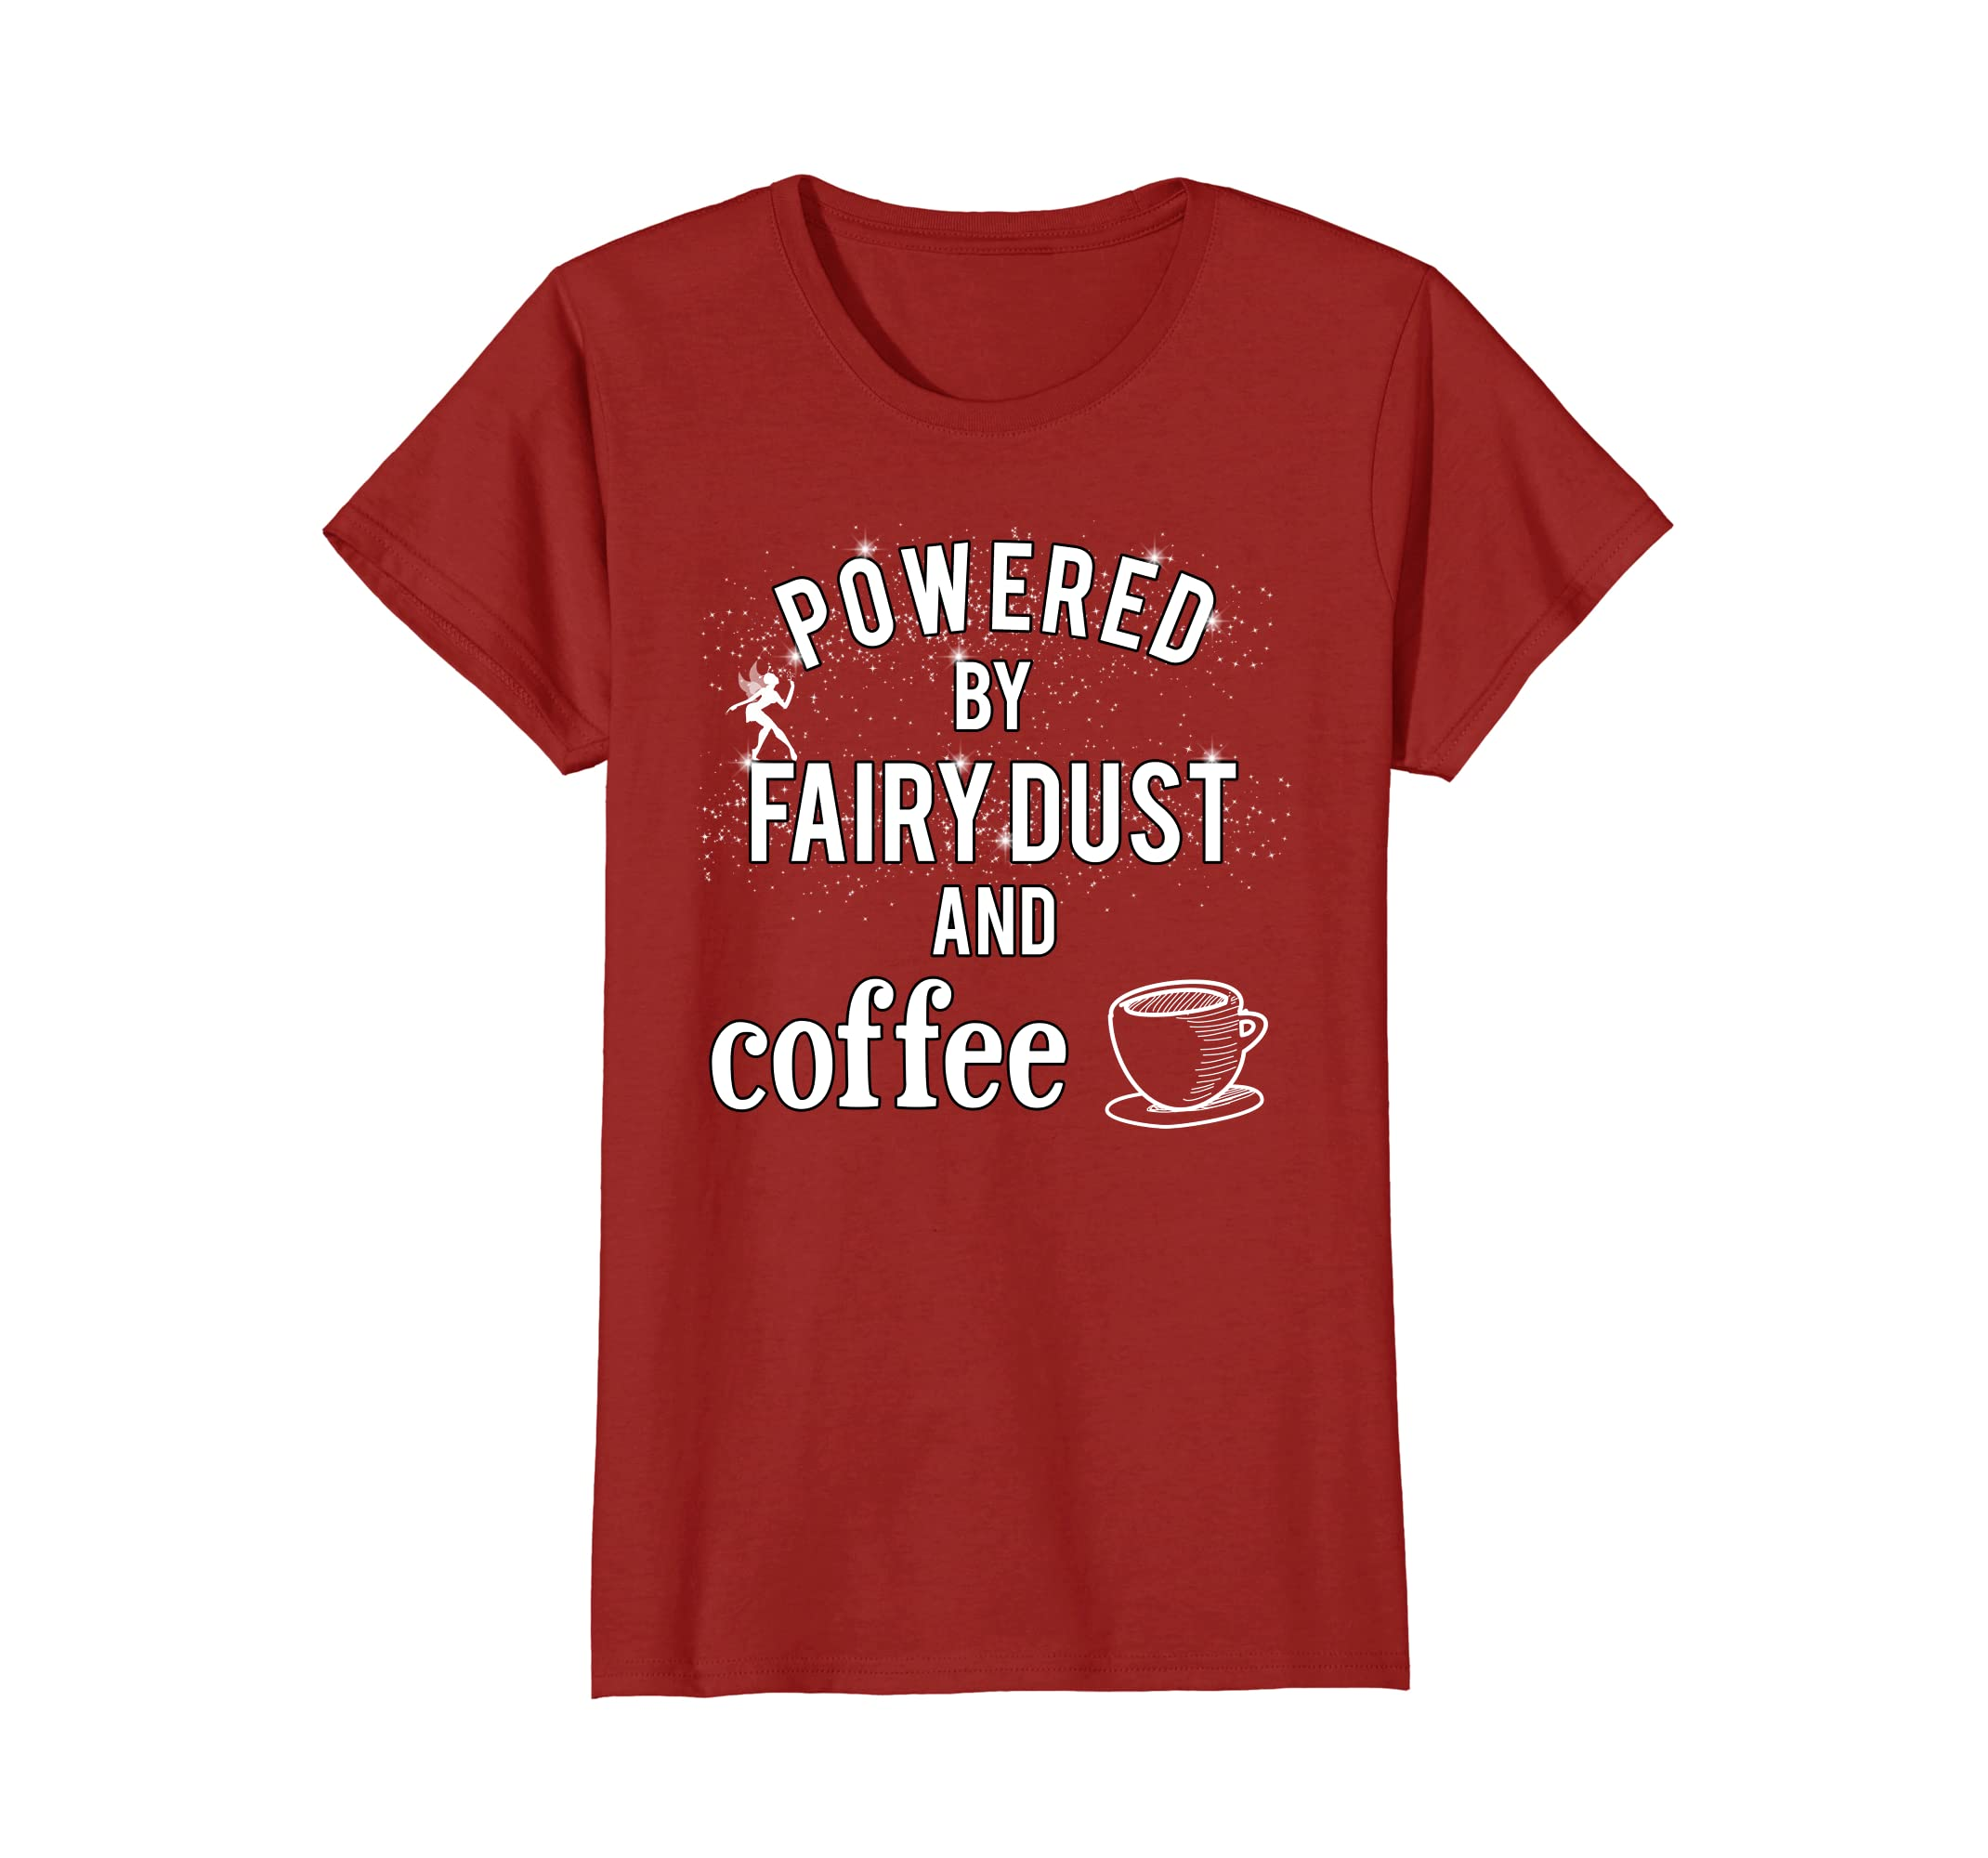 50b9098e Amazon.com: Powered By Fairy Dust And Coffee Funny T-Shirt: Clothing